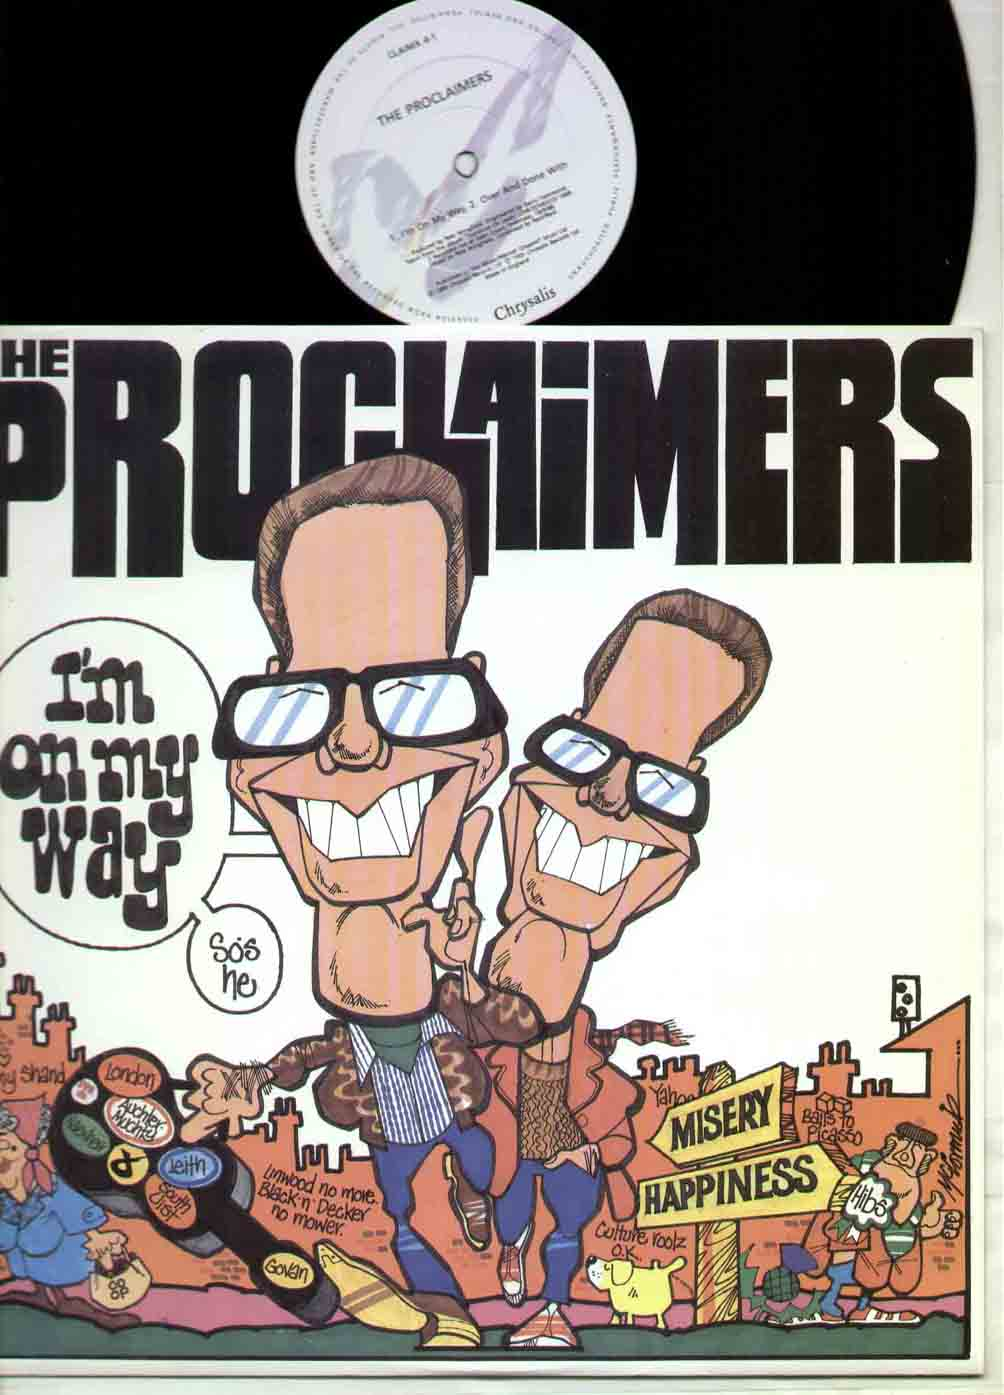 PROCLAIMERS - I'm On My Way Album